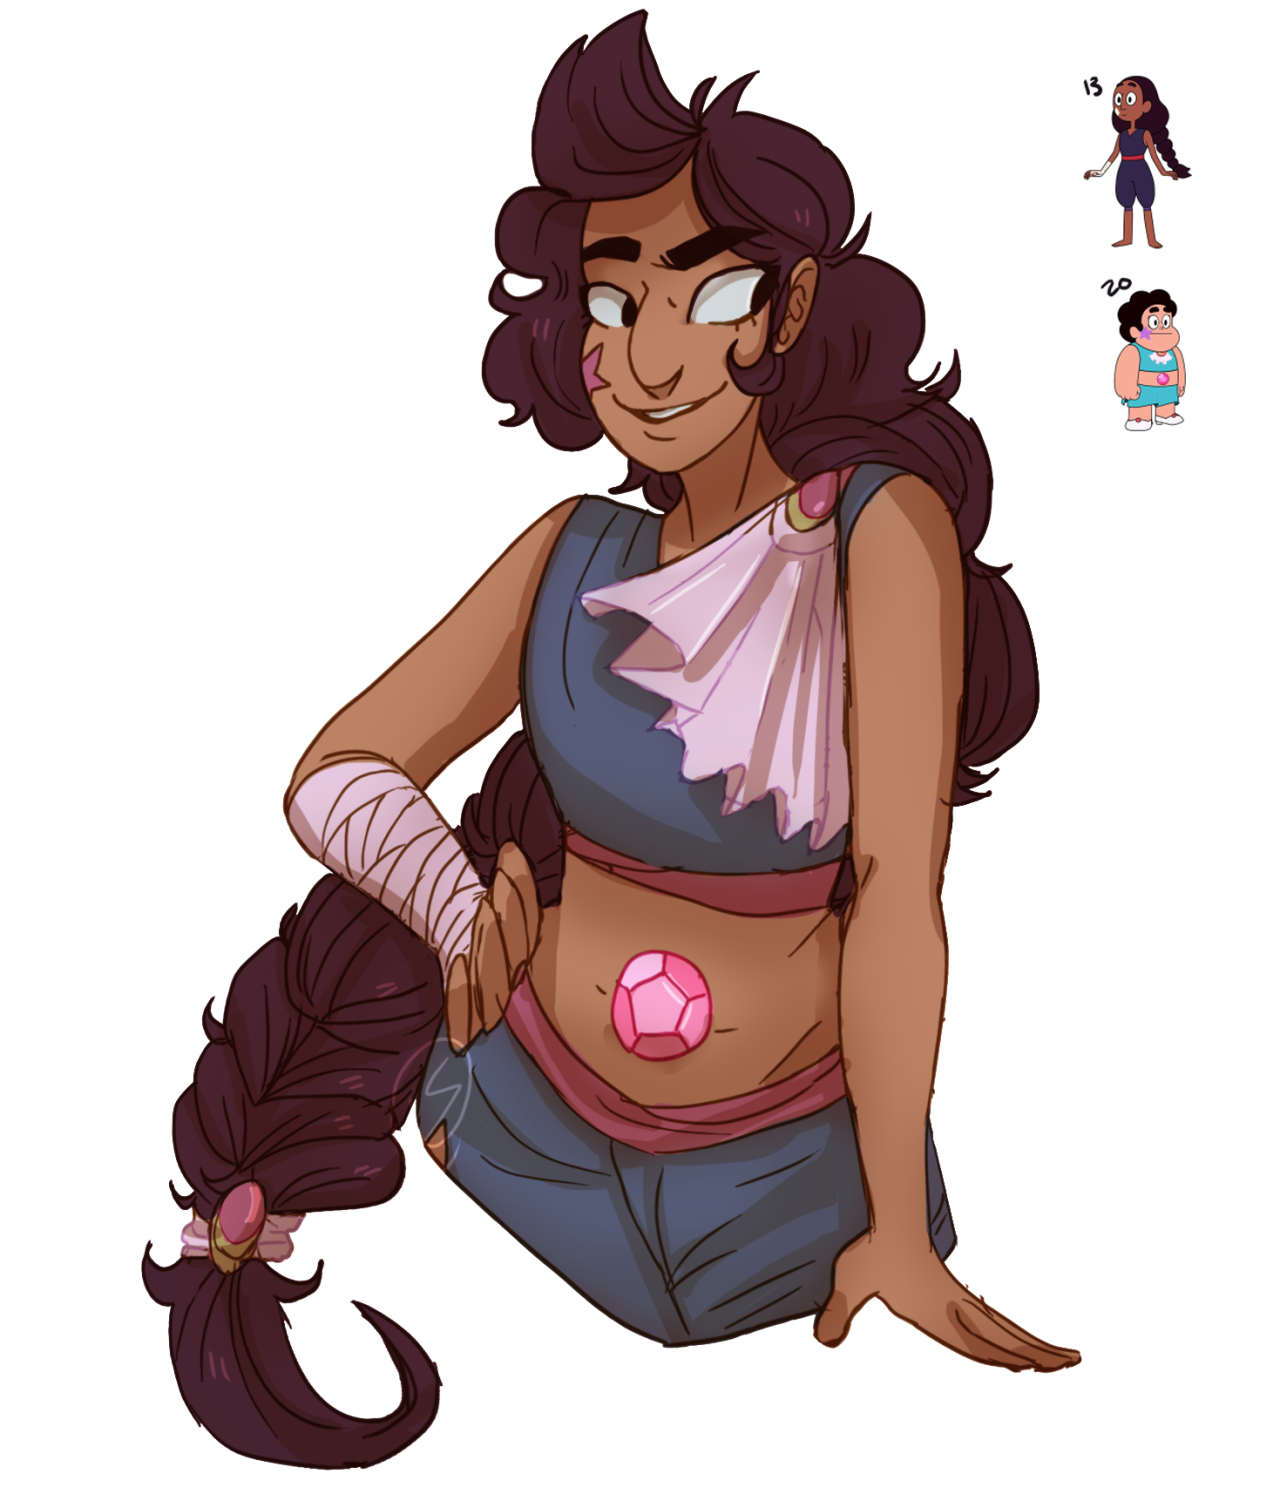 Stevonnie from this challenge/